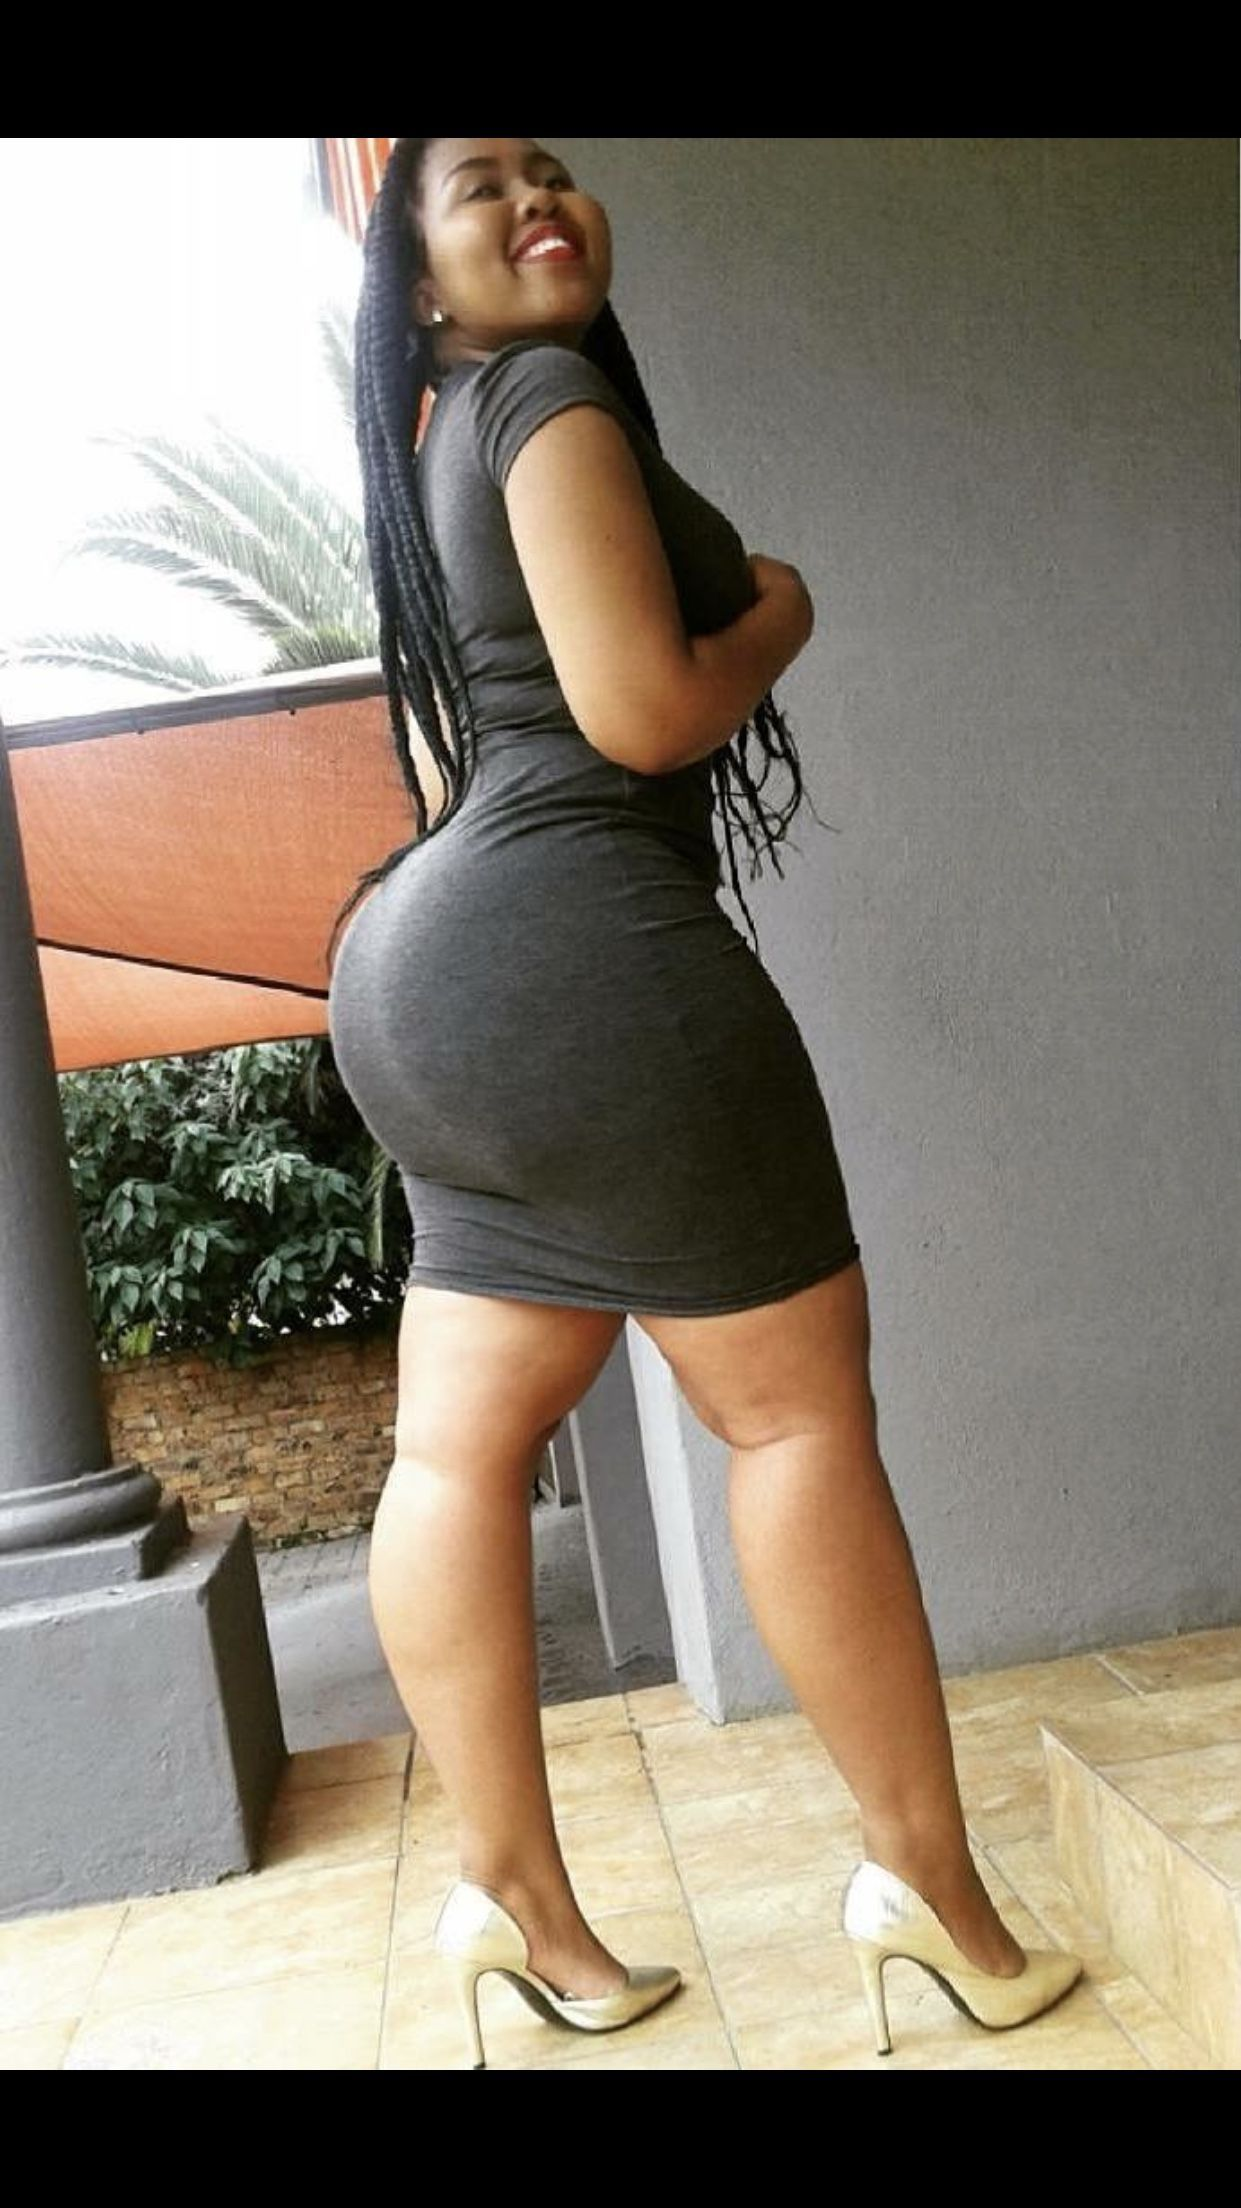 Thick curvy black booty